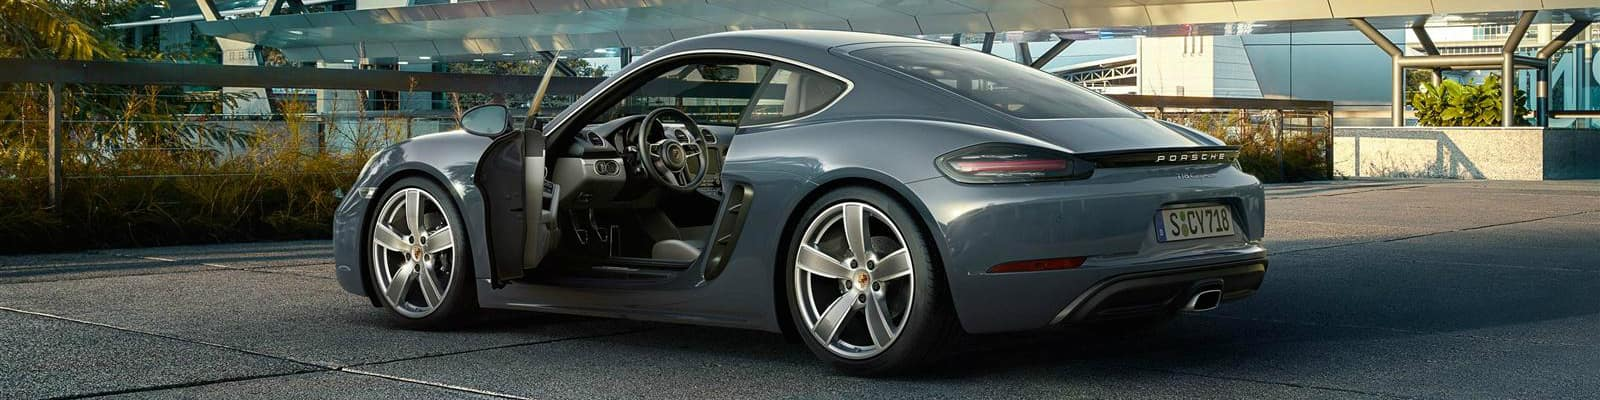 2018 Porsche 718 Cayman top